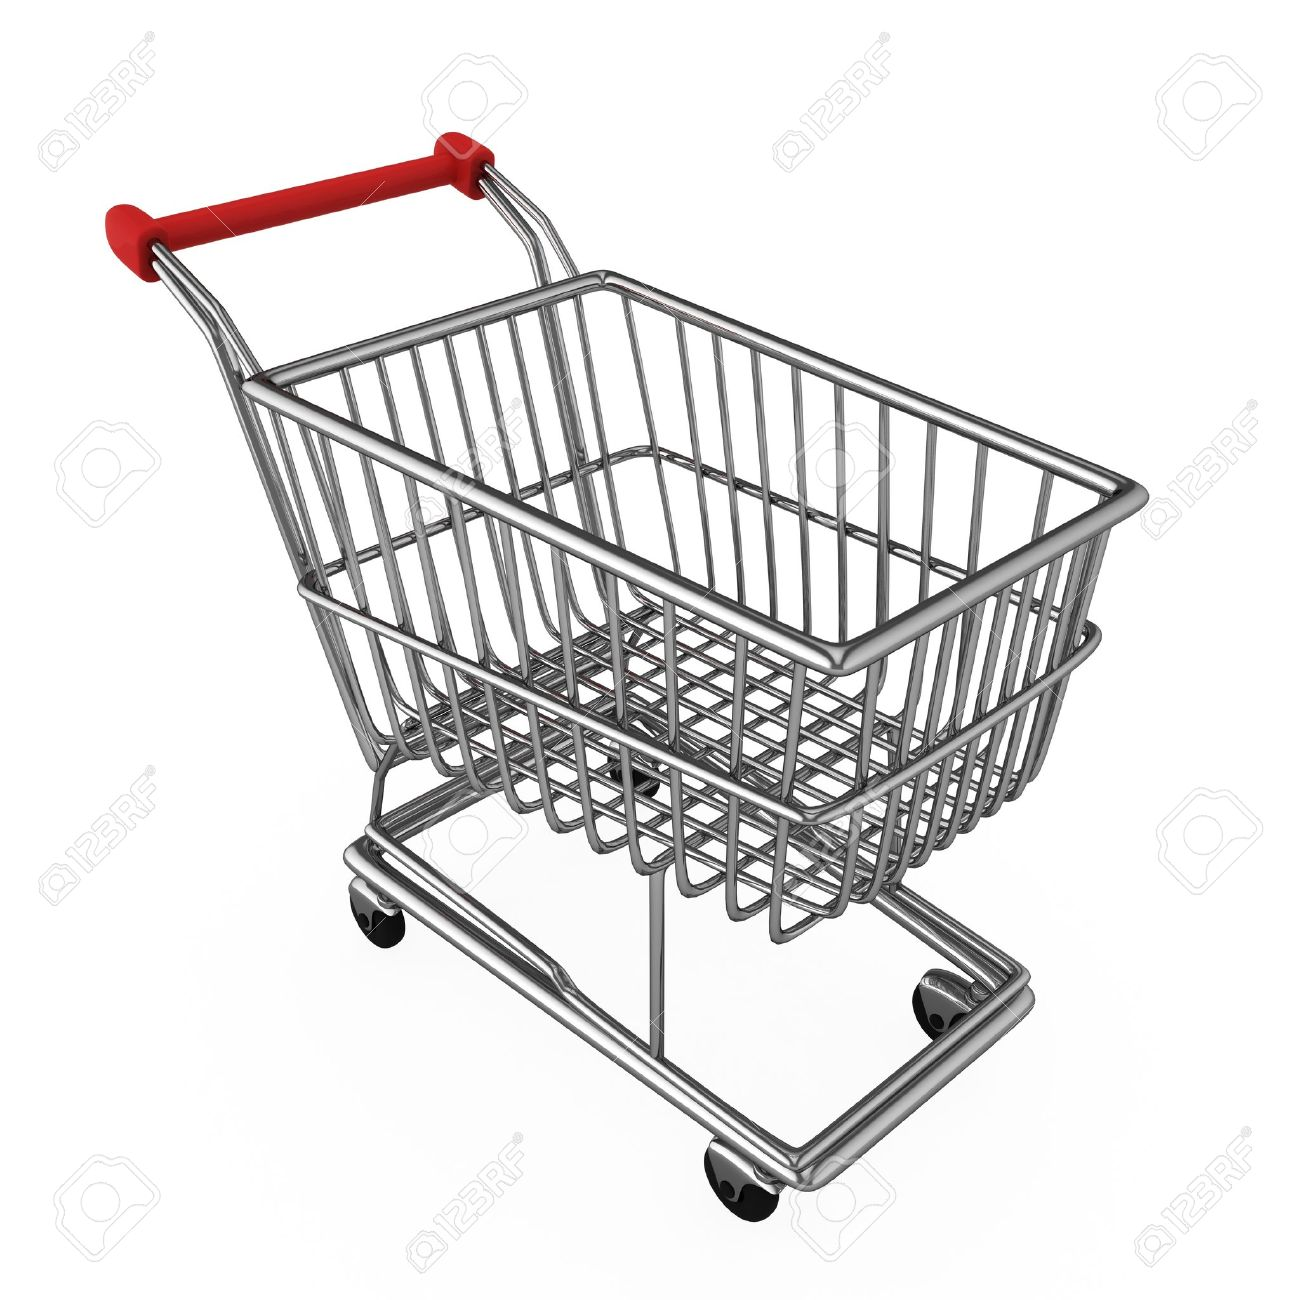 1300x1300 3d Illustration Of A Shopping Cart Stock Photo, Picture